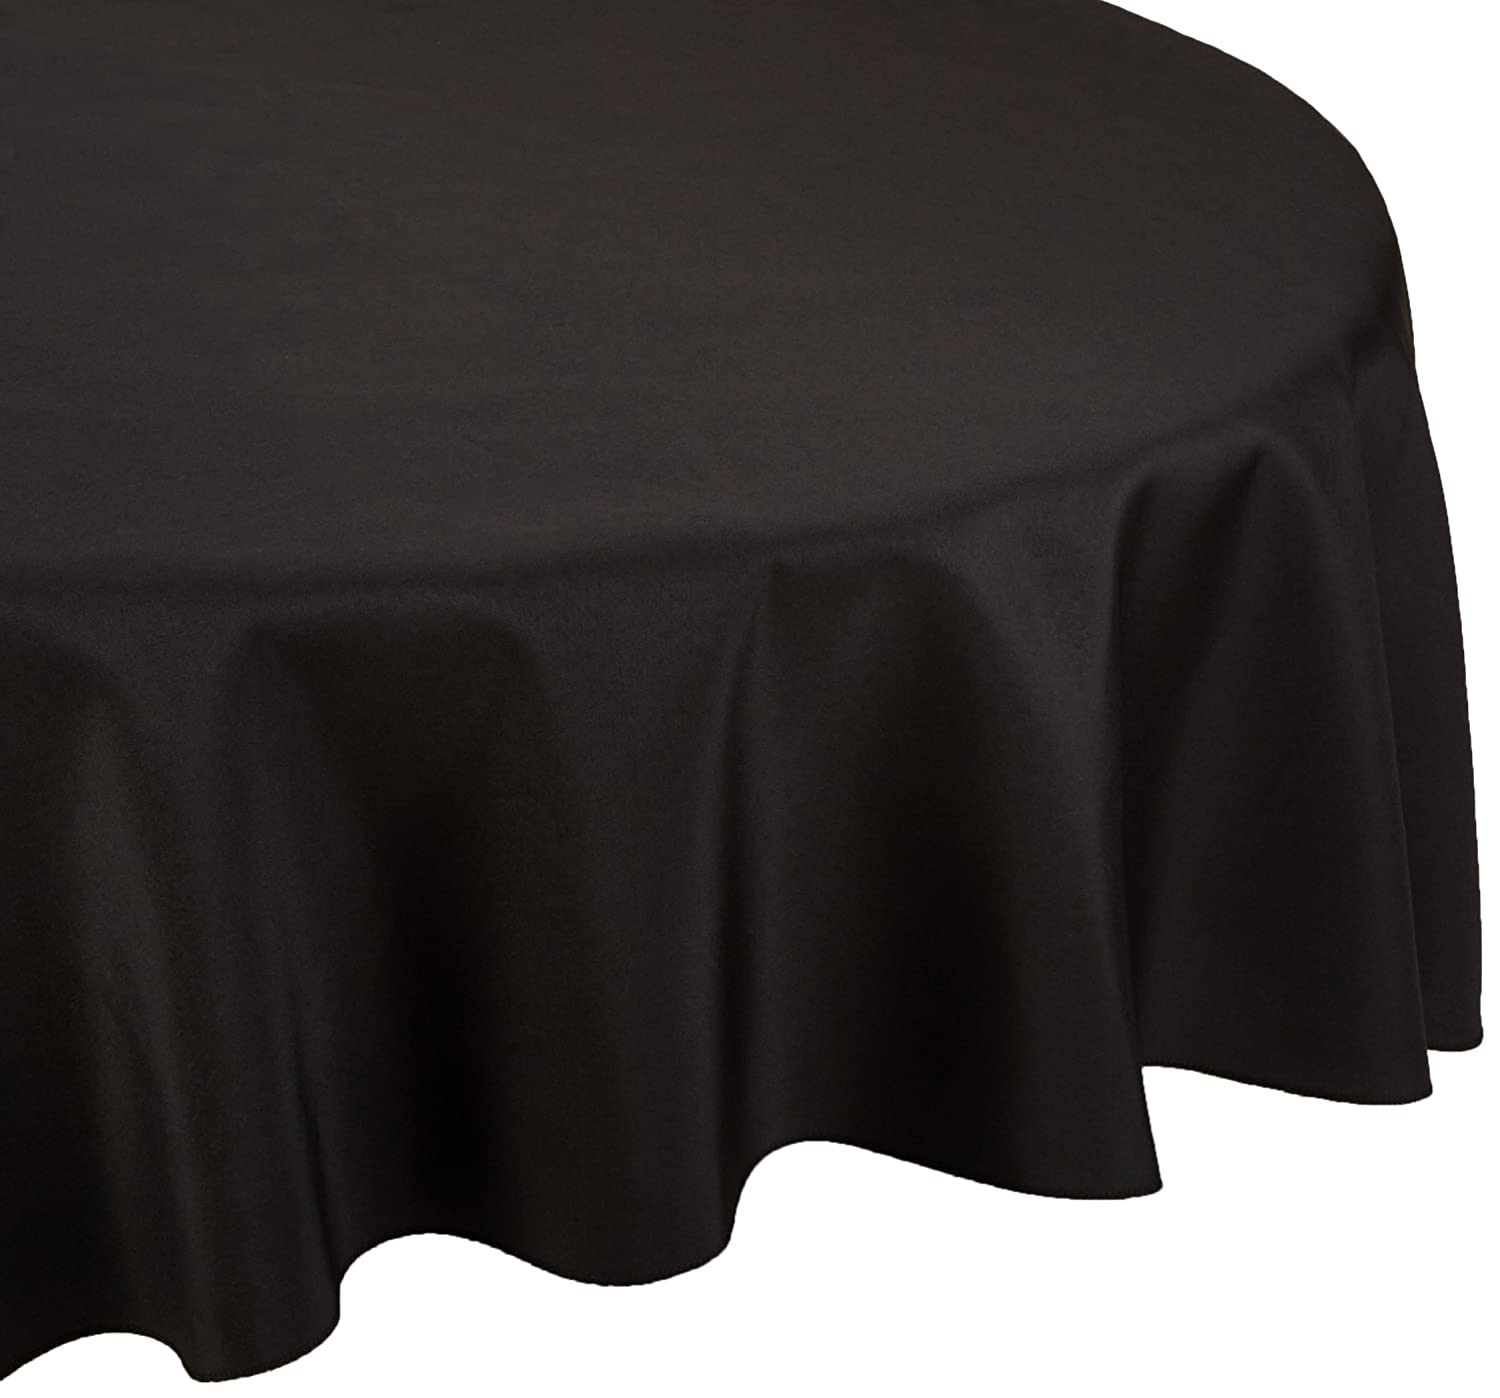 96 inch round tablecloth - Amazon Com Linentablecloth 132 Inch Round Polyester Tablecloth Black Home Kitchen